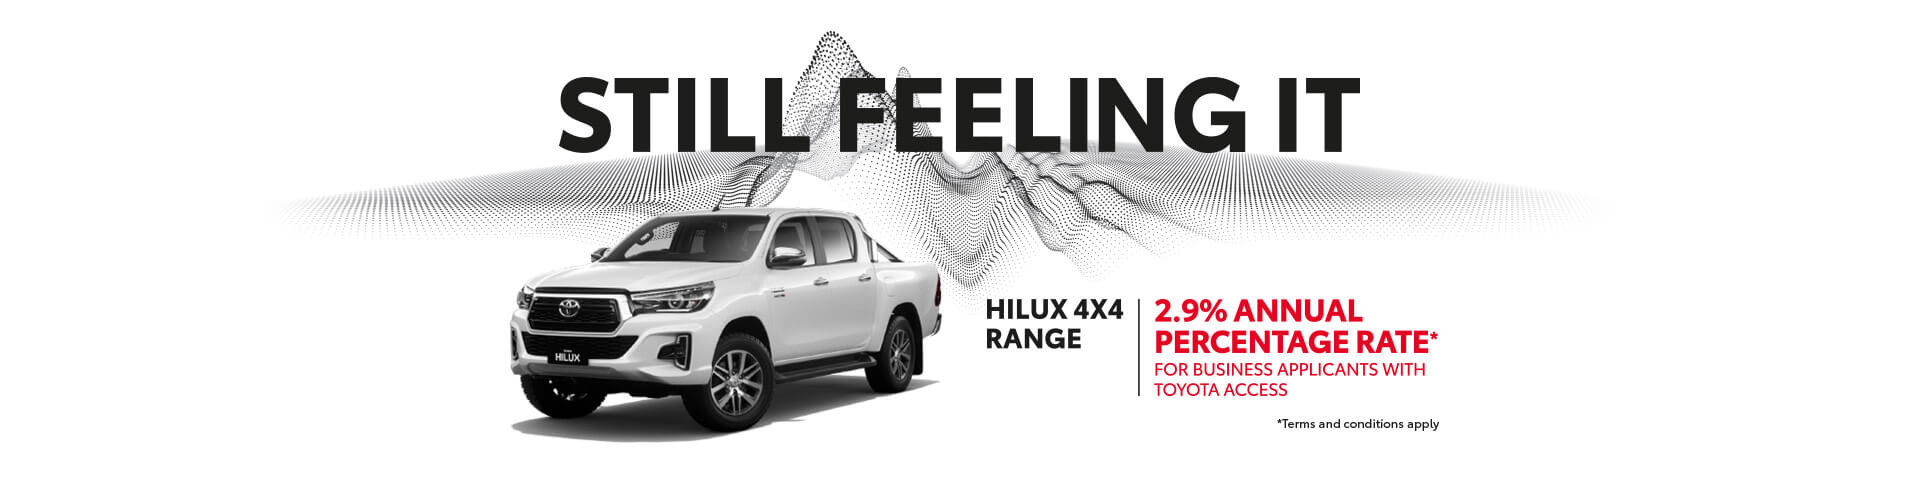 Toyota HiLux 2.9% Annual Percentage